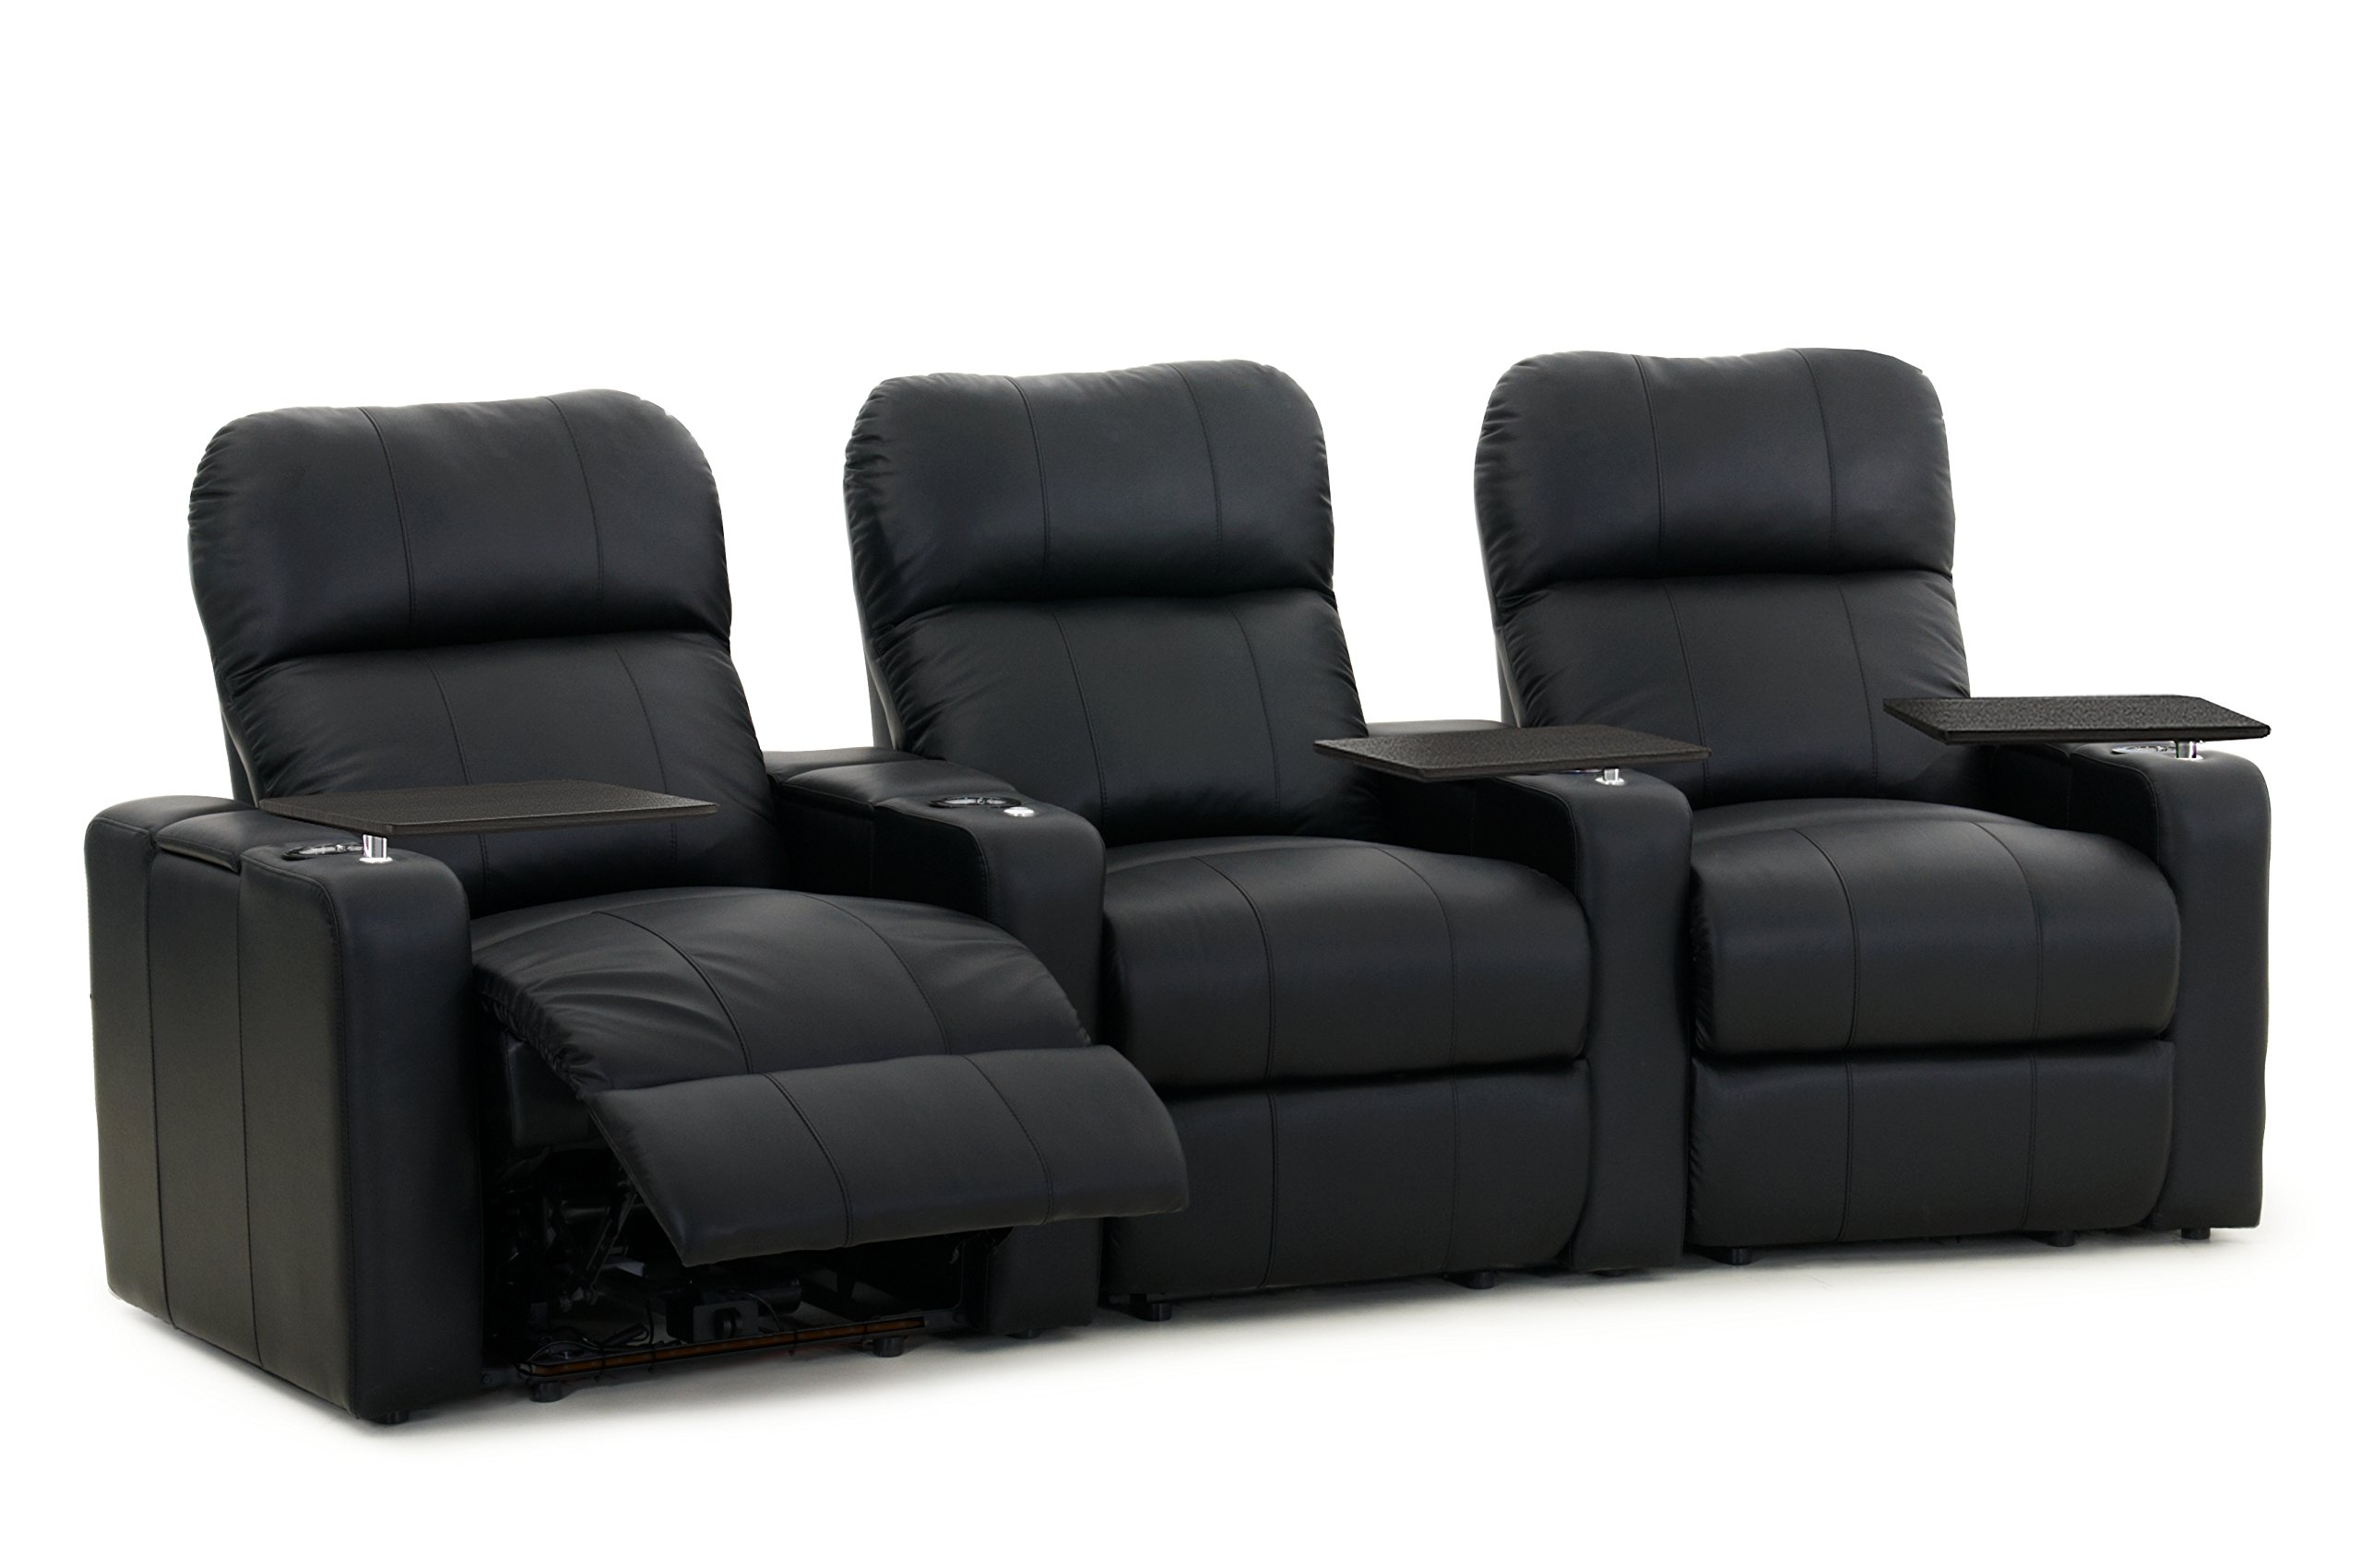 Octane Turbo XL700 Row of 3 Seats, Curved Row in Black Bonded Leather with Manual Recline